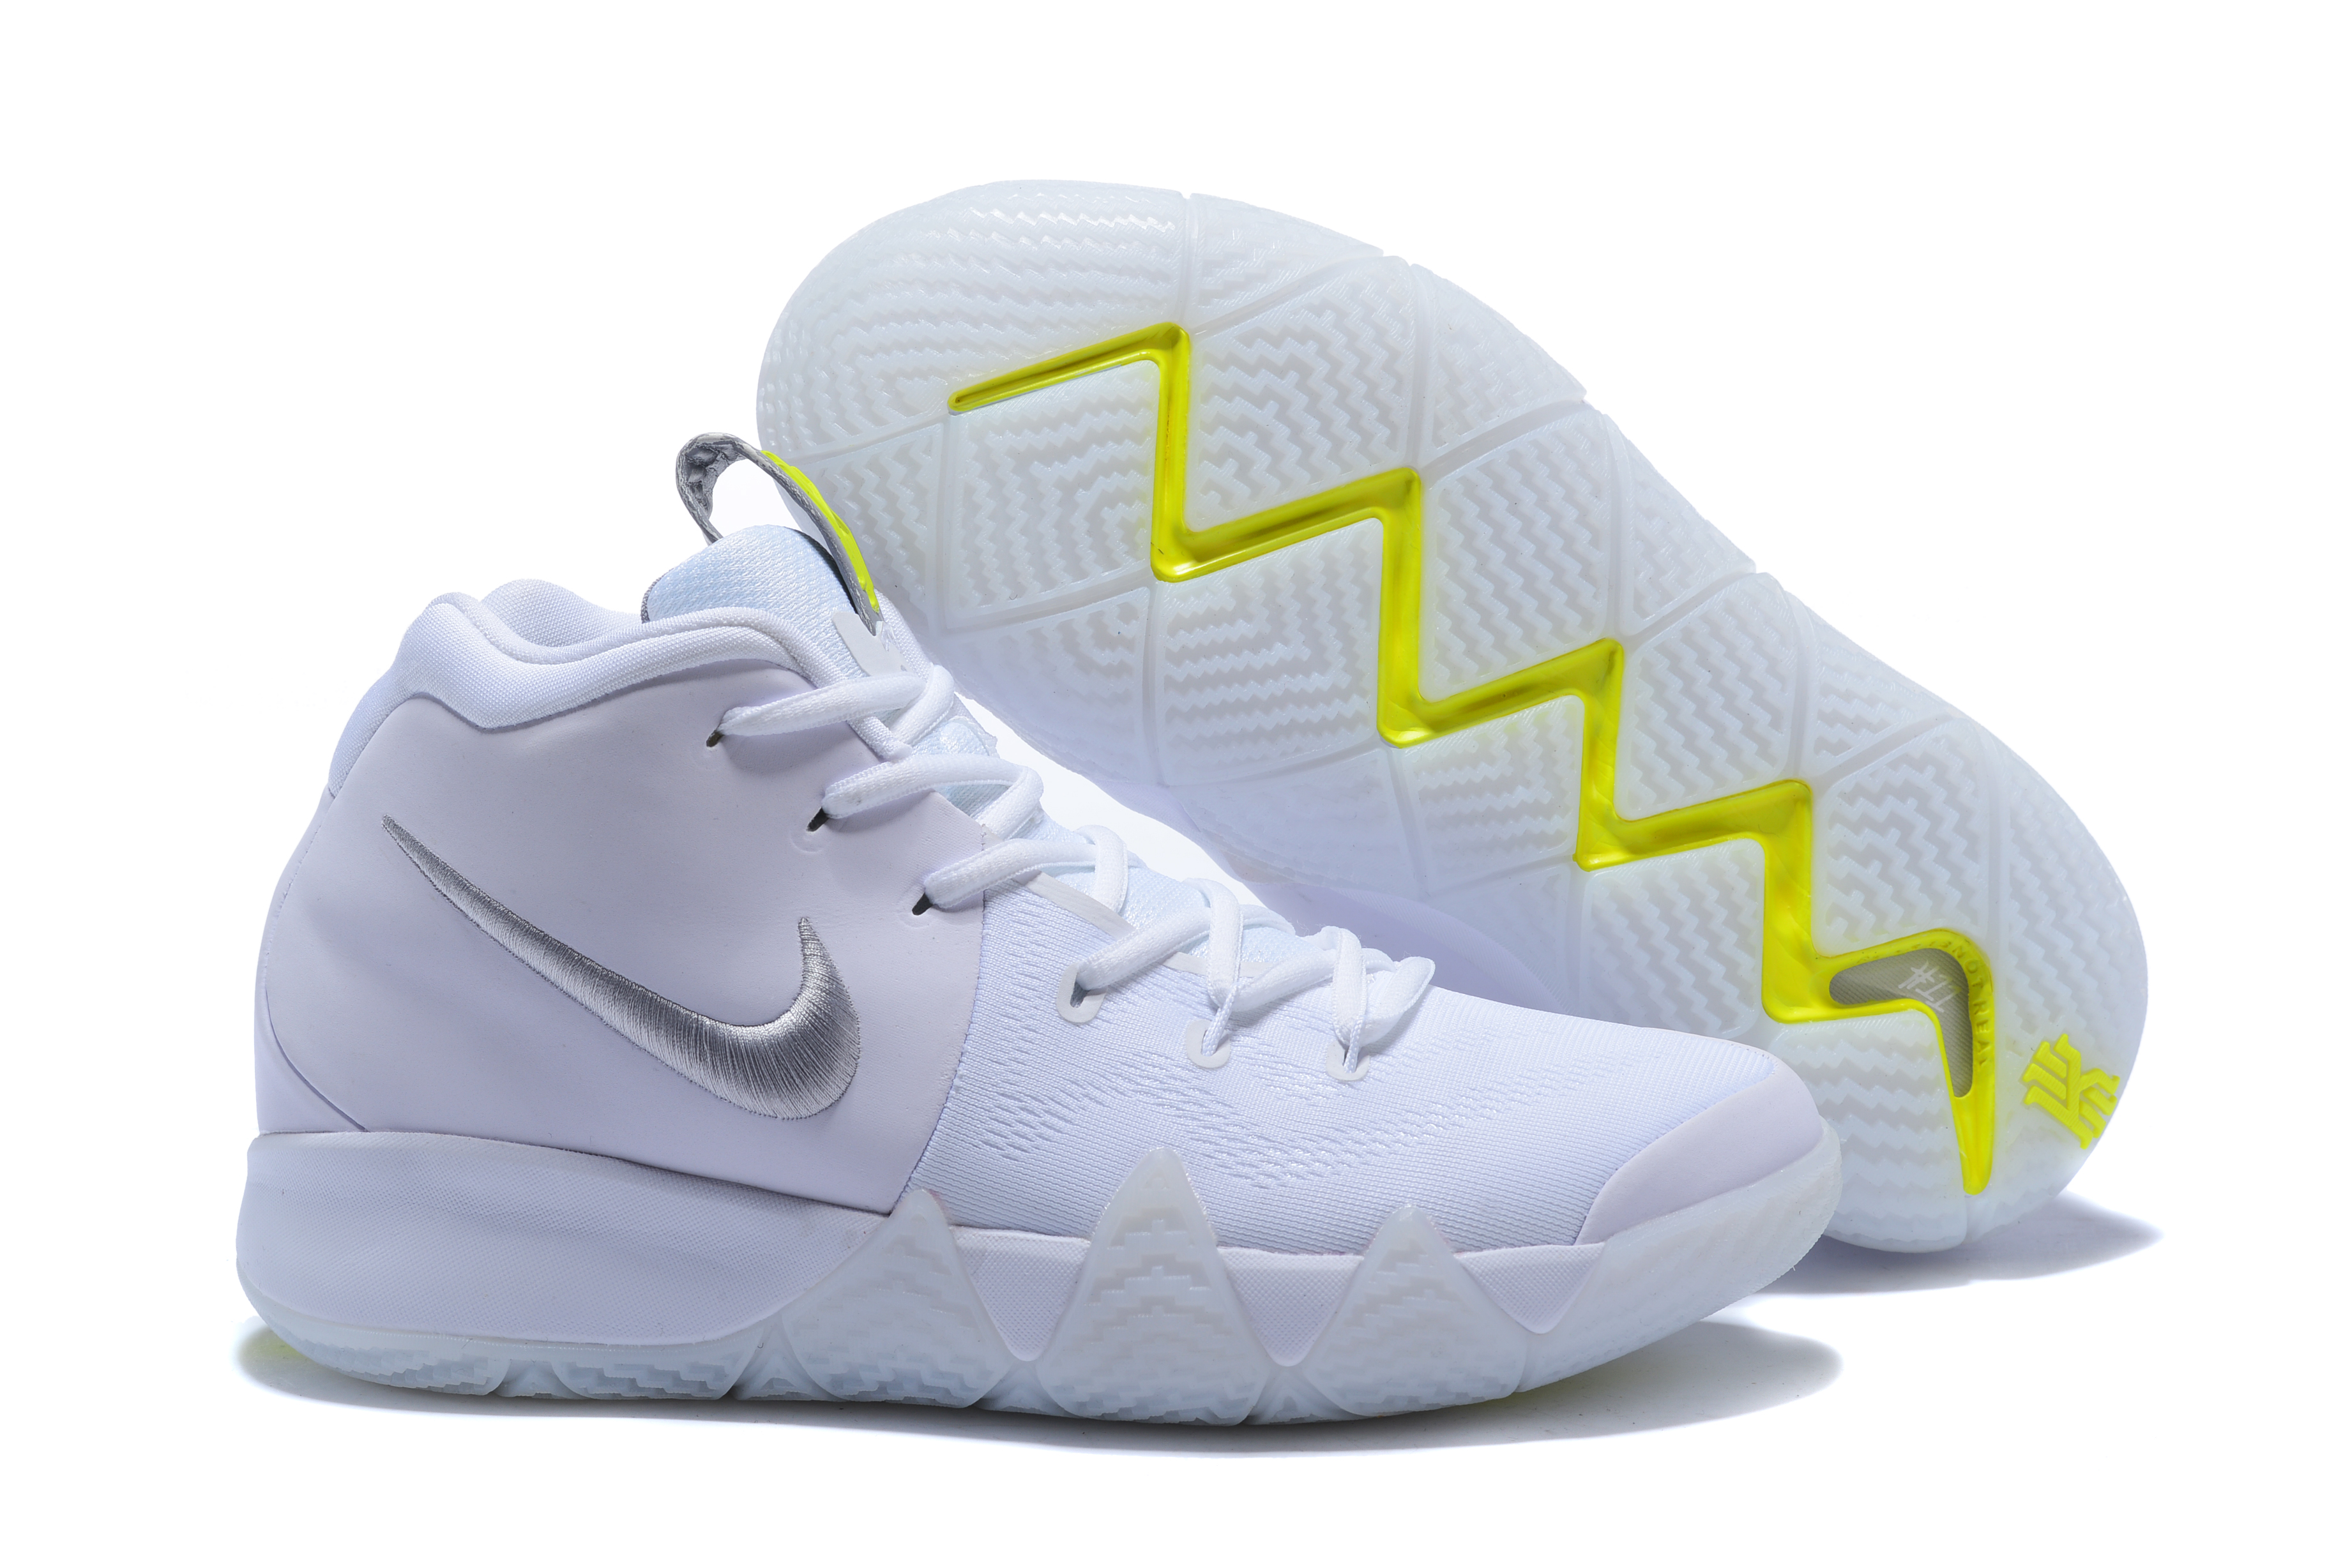 2018 Nike Kyrie 4 White Fluorscent Green Shoes